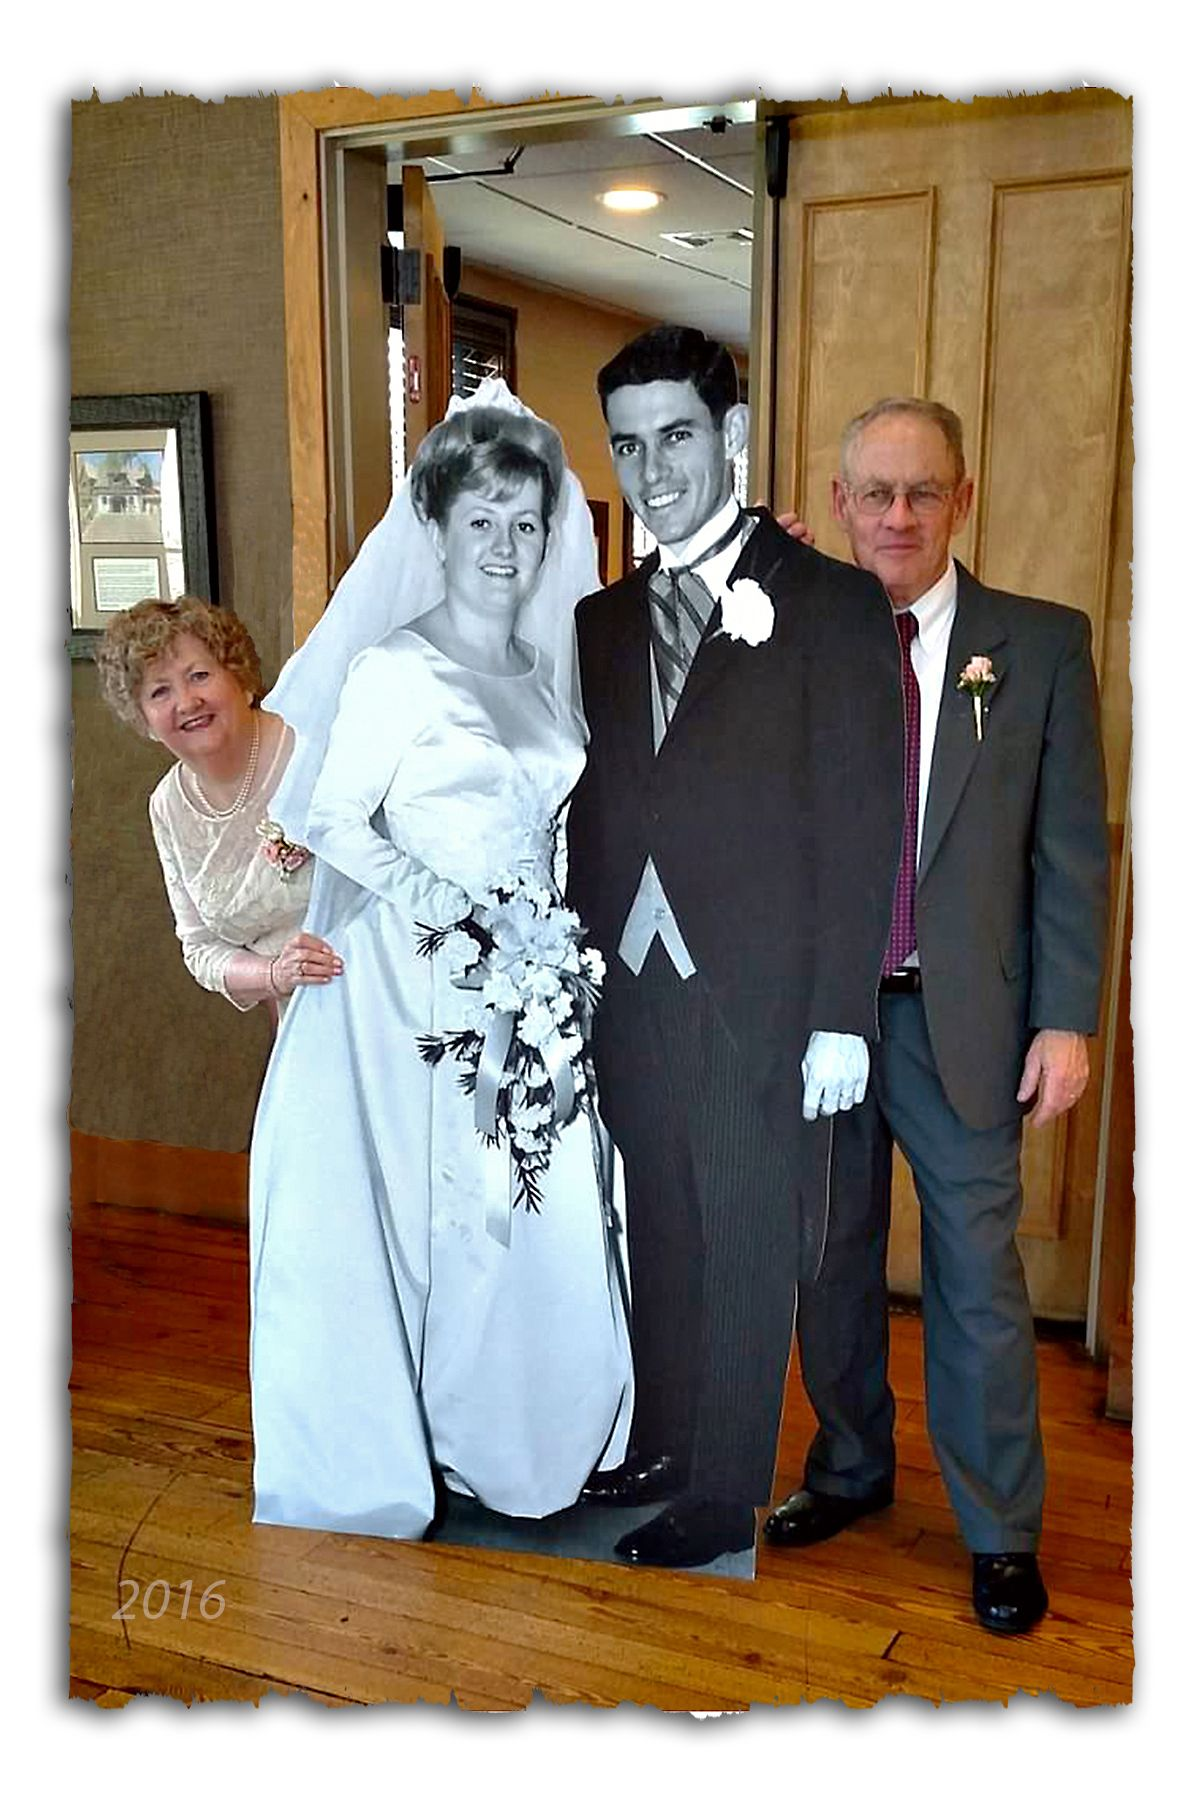 A u cutout wedding picture taken  years ago was a hit at our th